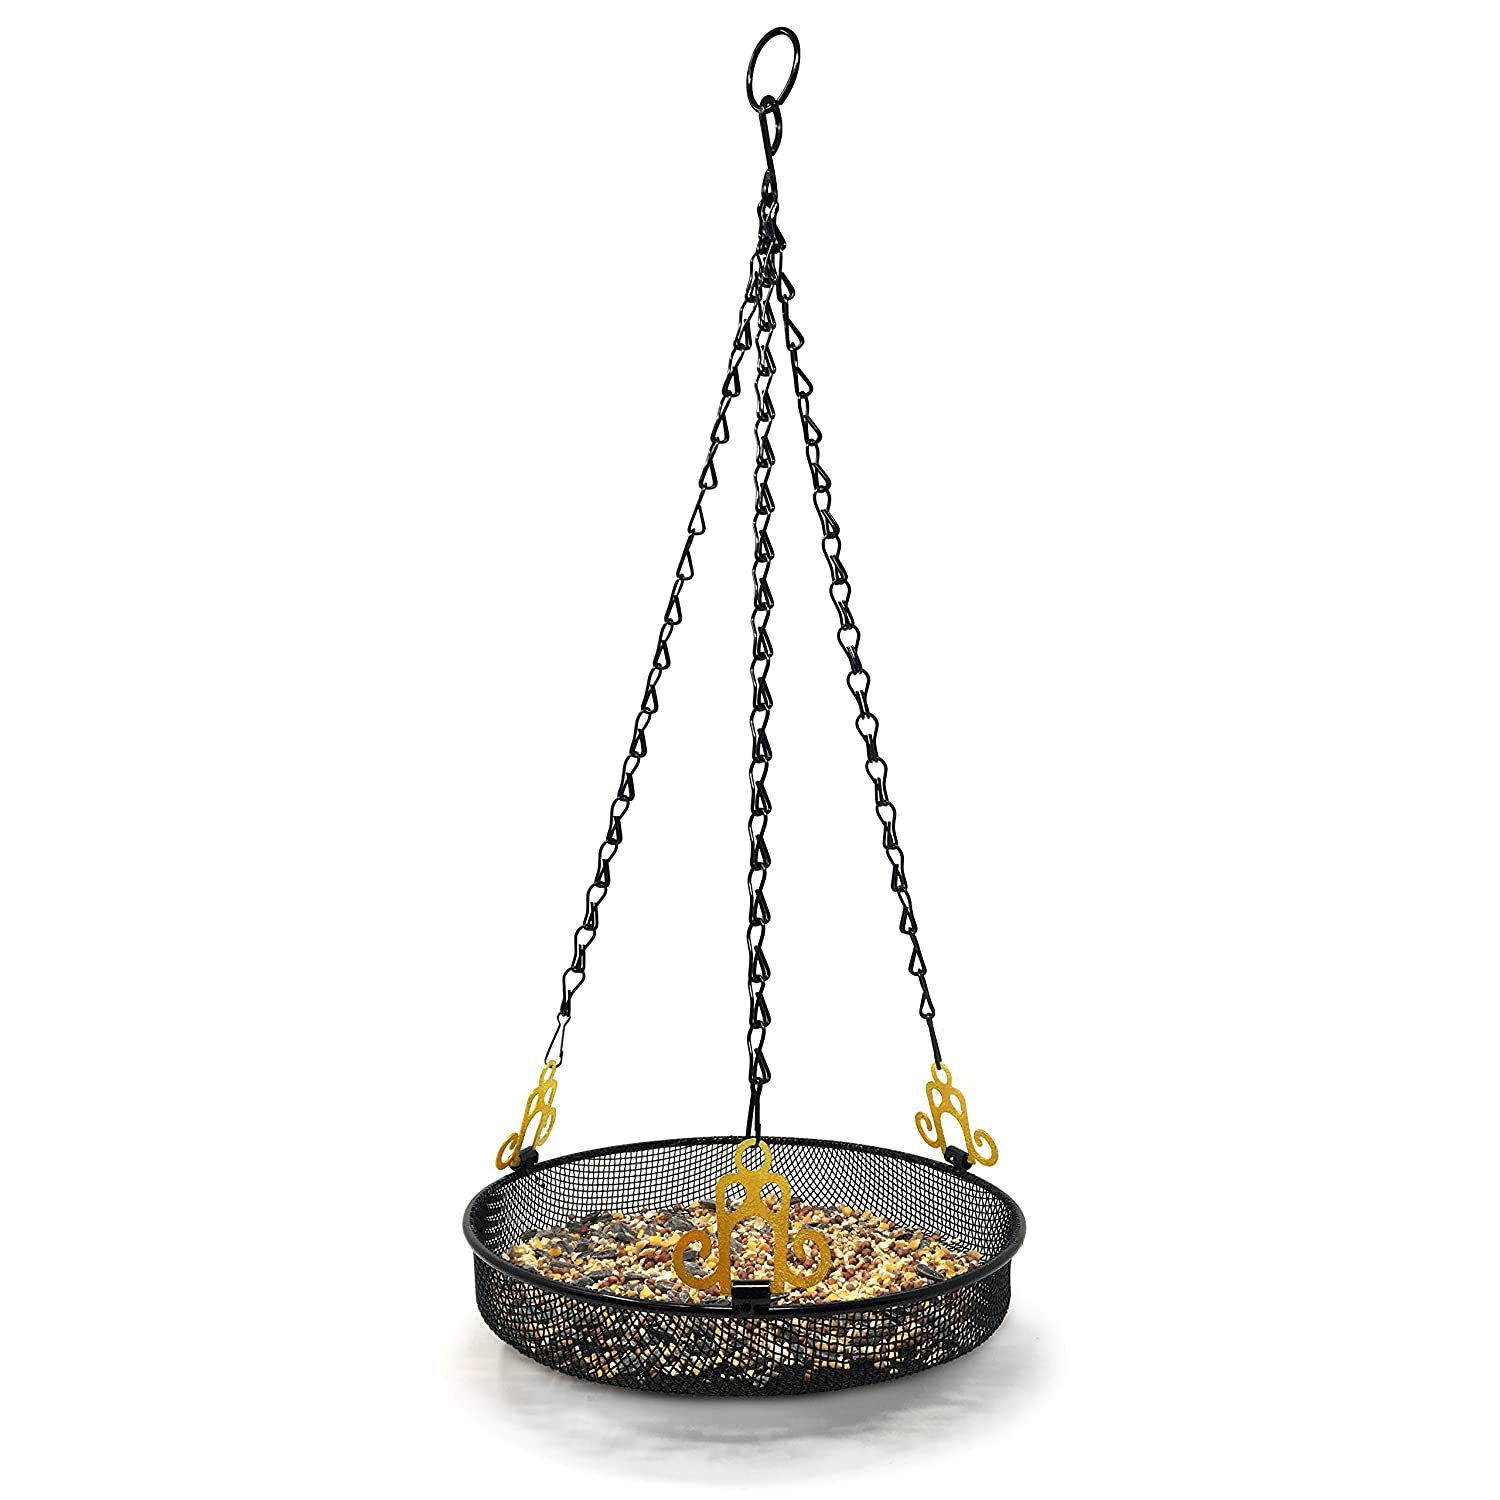 Gray Bunny Hanging Bird Feeder Tray with Strong Double-Loop Hanging Chains Steel Hanging Platform Bird Feeder Dish 9.25 inch (Dia) with 19 Inch Chains